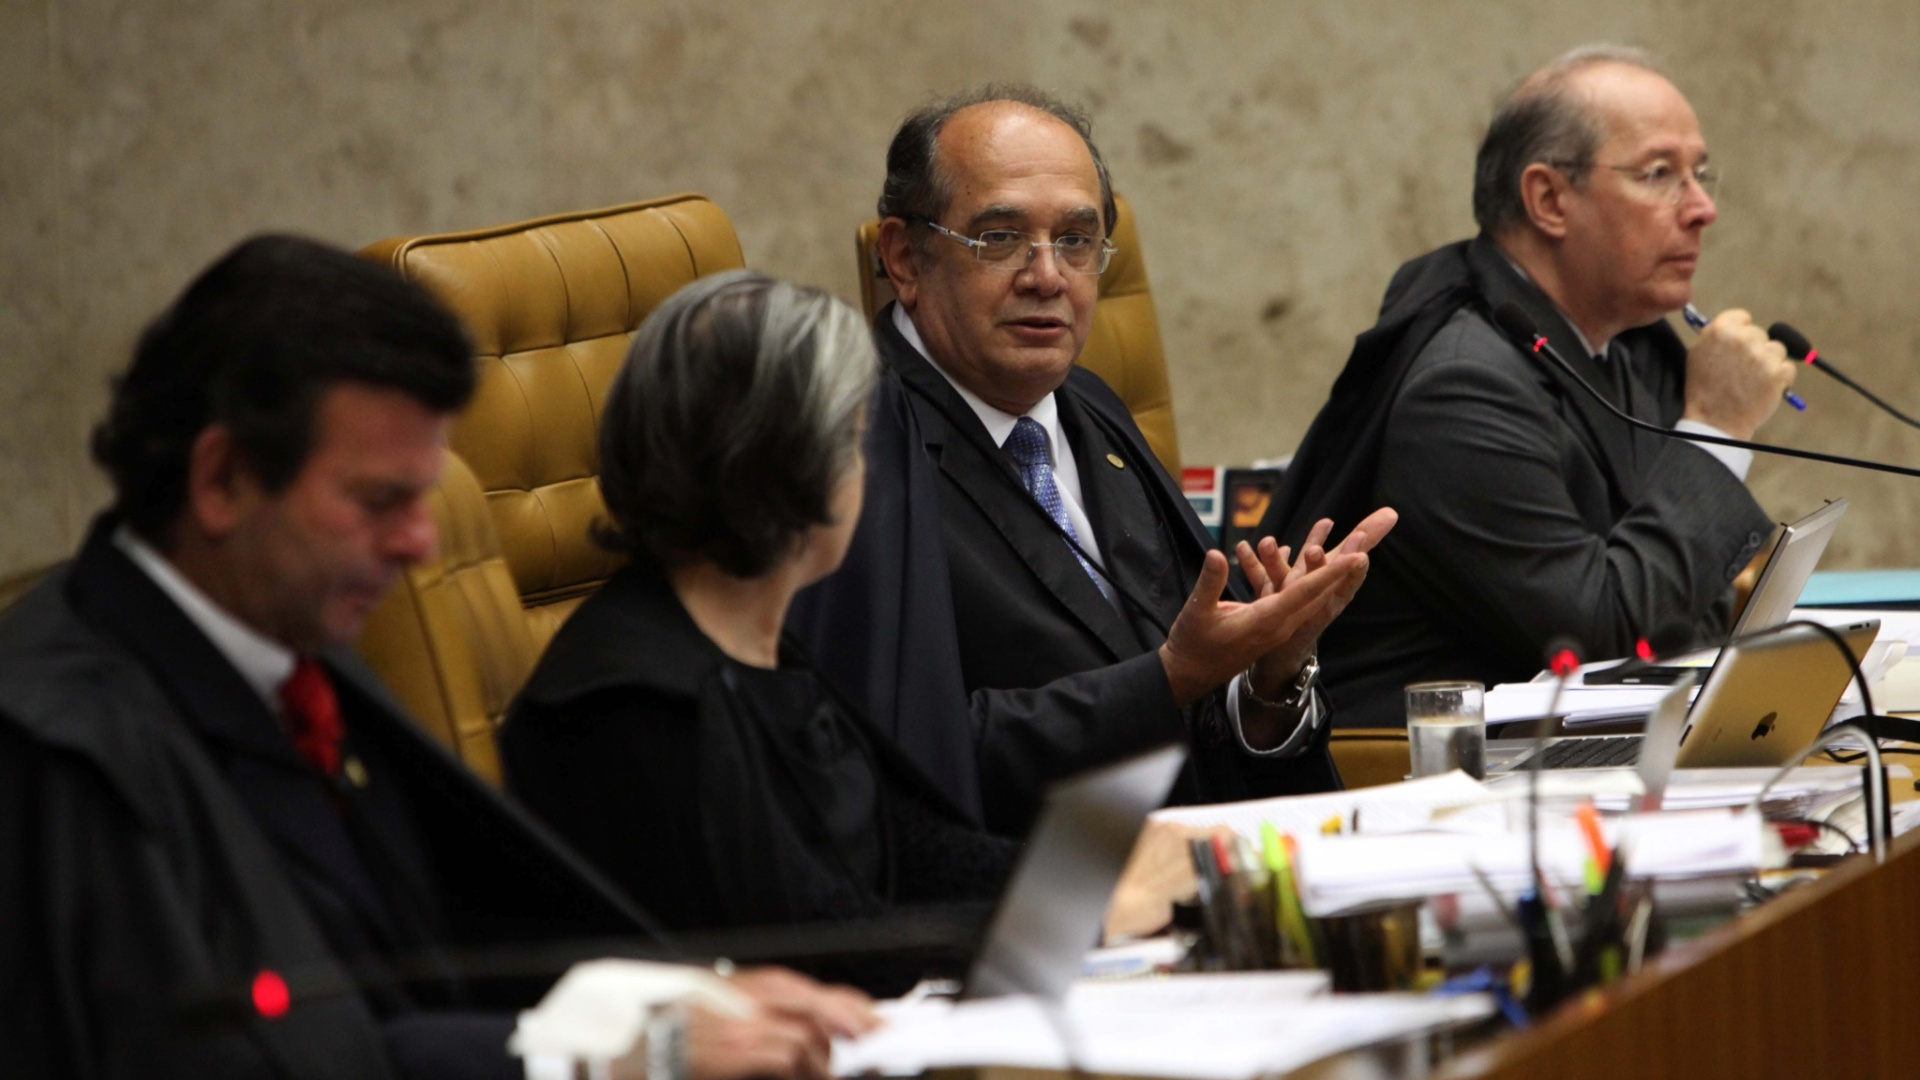 5.dez.2012 - Os ministros do STF Luiz Fux, Crmen Lcia, Gilmar Mendes e Celso de Mello, da esquerda para a direita, acompanham a 50 sesso de julgamento do mensalo